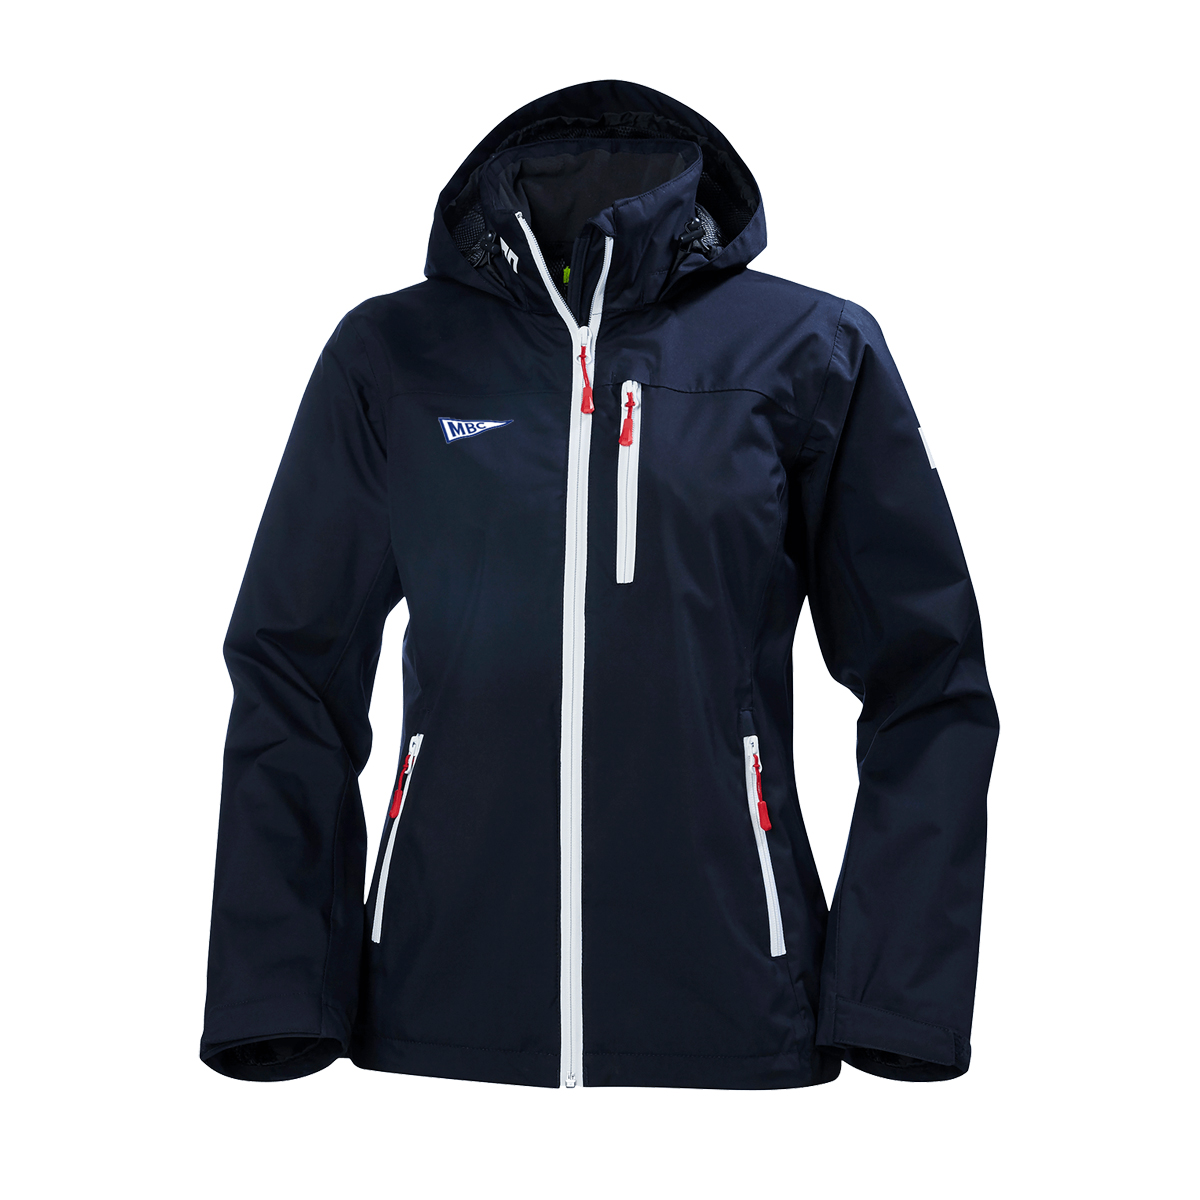 Monmouth Boat Club - Women's Helly Hansen Hooded Crew Jacket